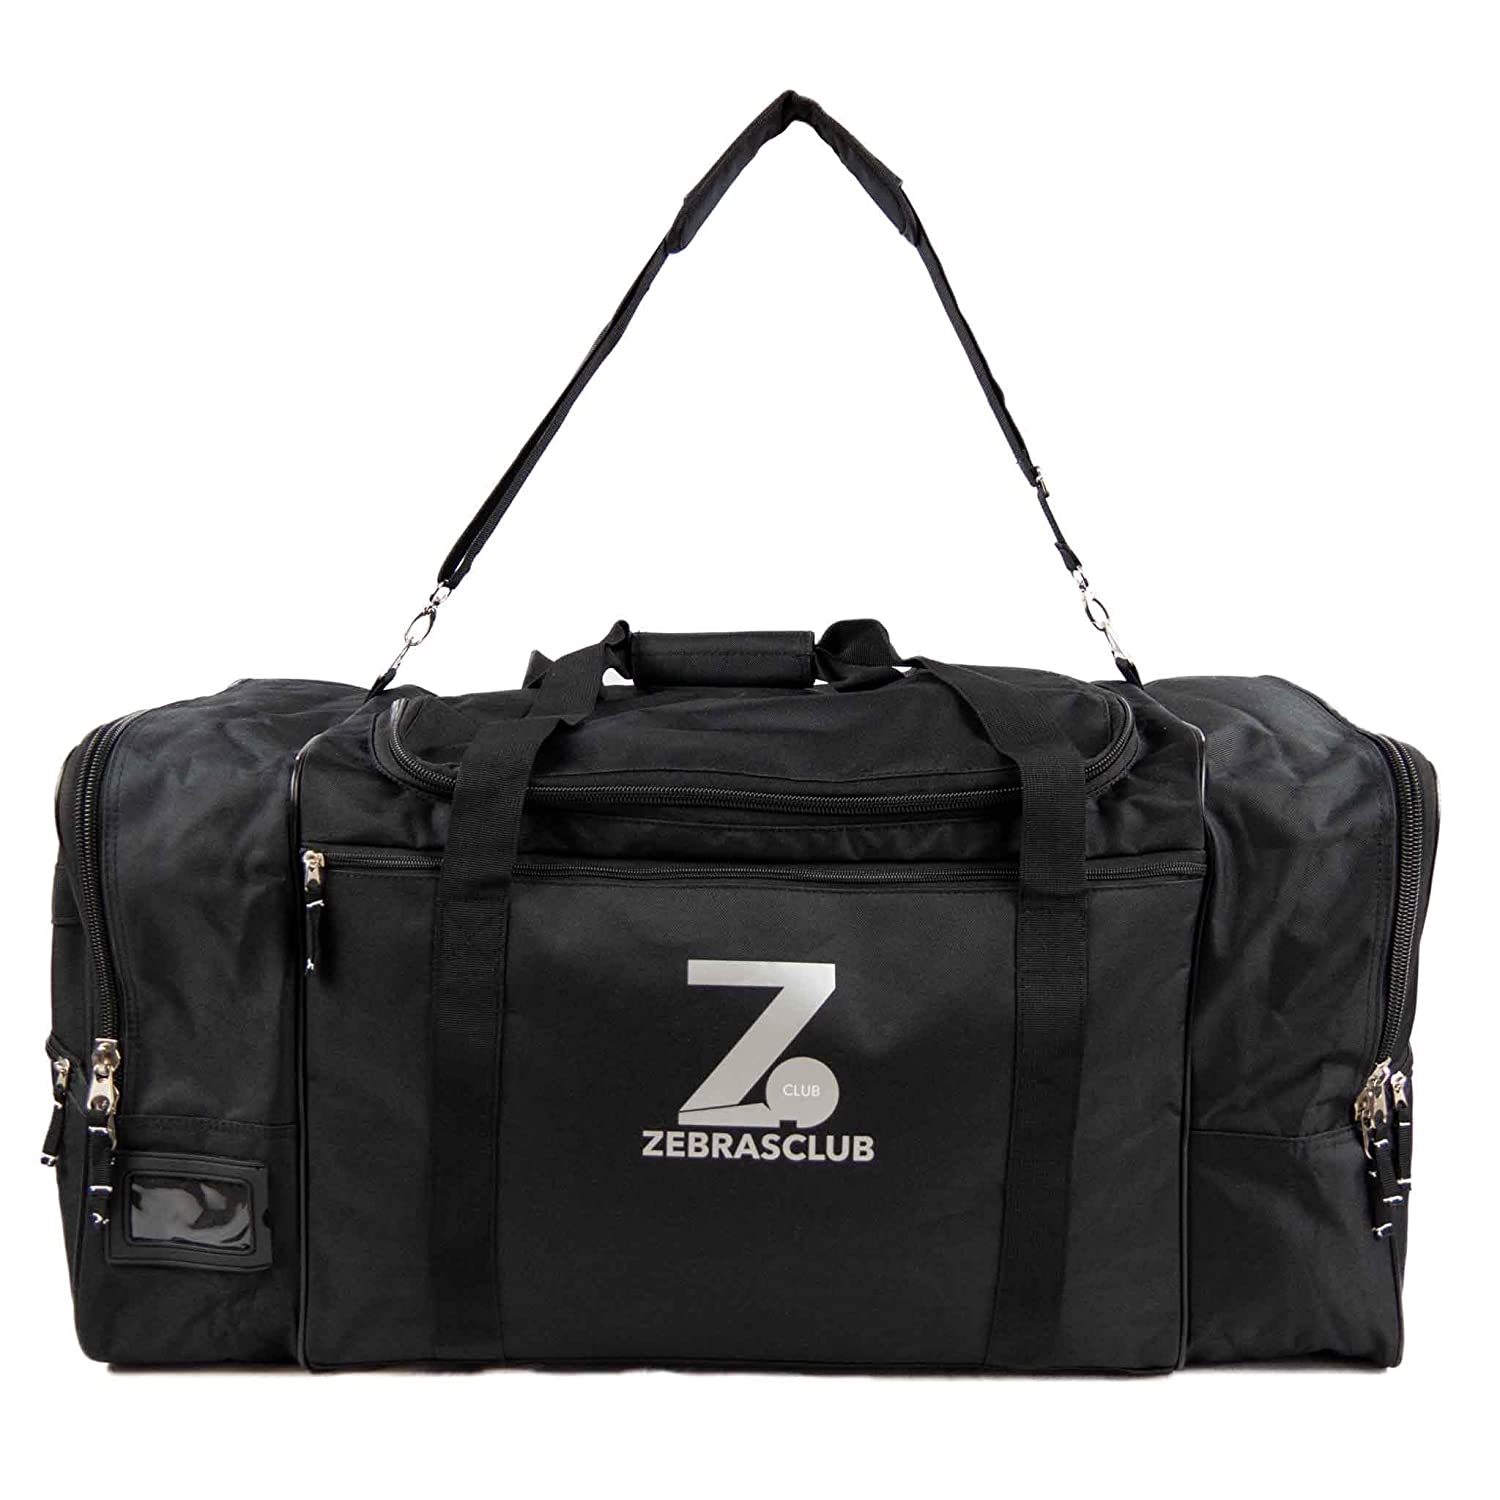 ZEBRASCLUB Referee Bag